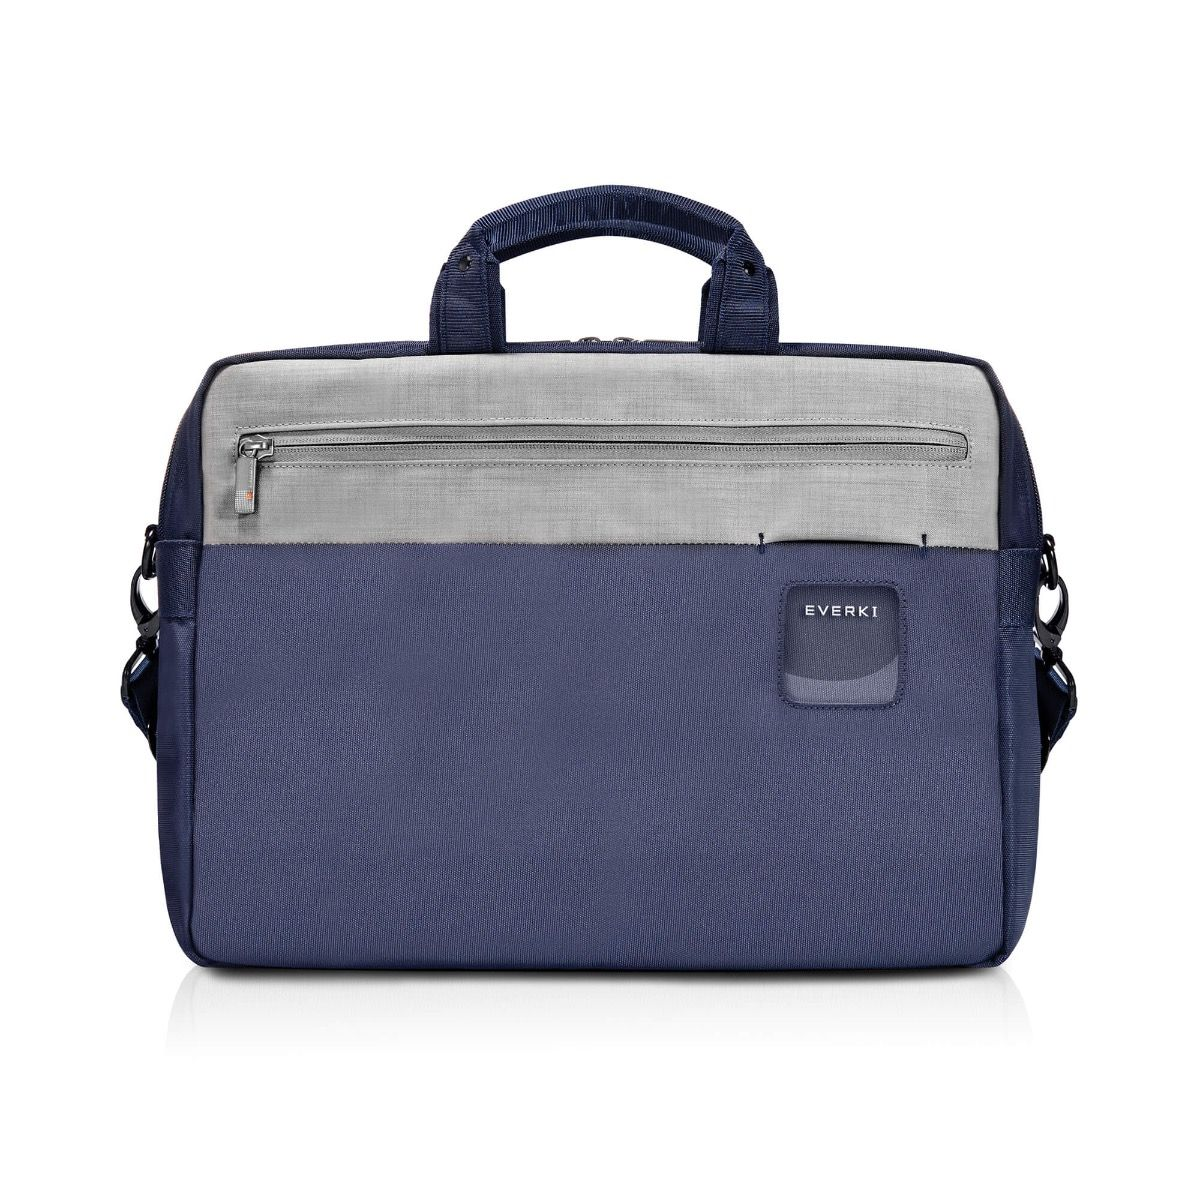 EVERKI ContemPRO 15 Inch Navy Laptop Briefcase